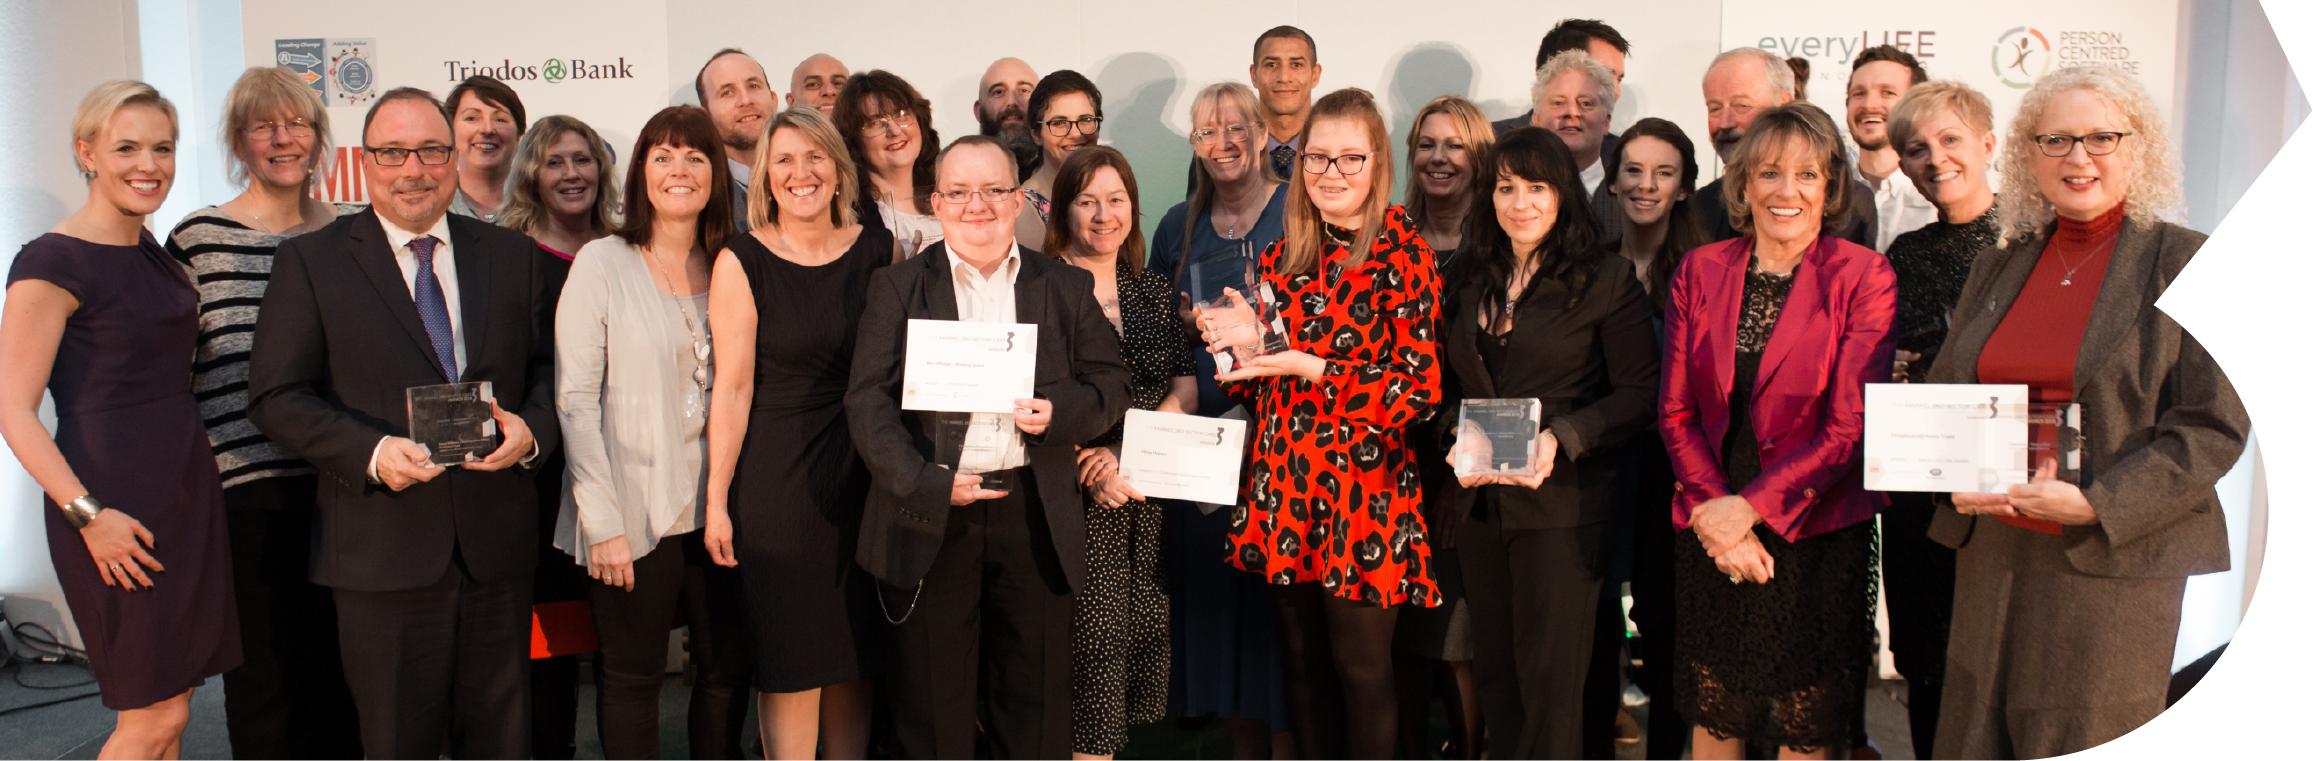 winners and finalists at the 3rd Sector Awards